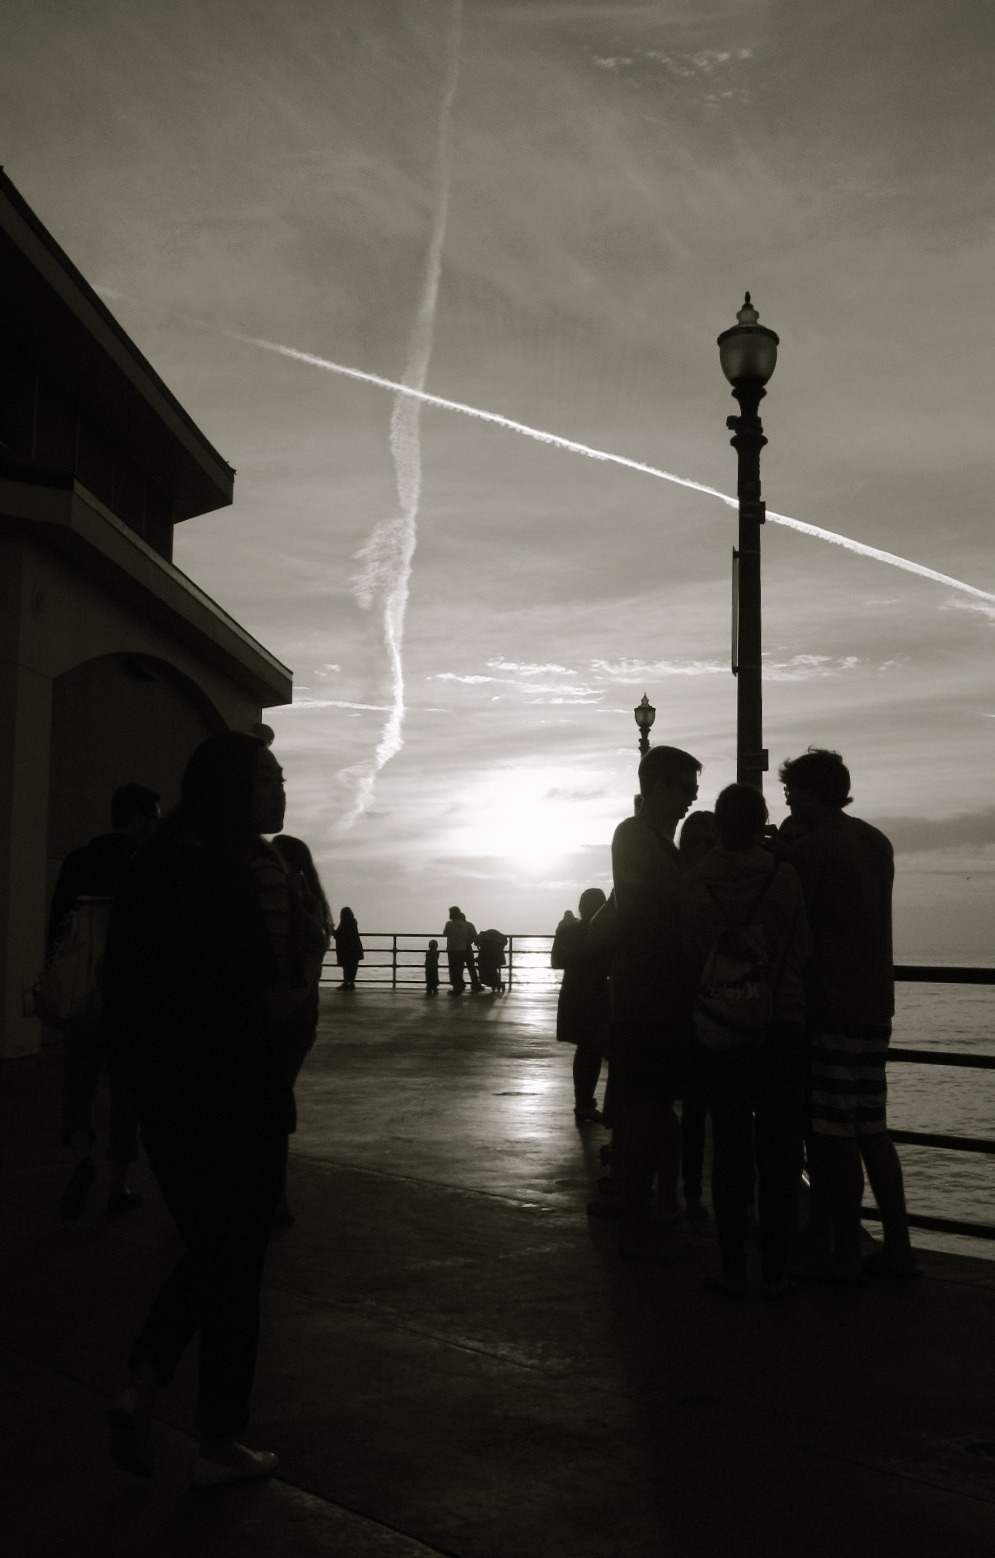 Taken at Huntington Beach Pier, California.